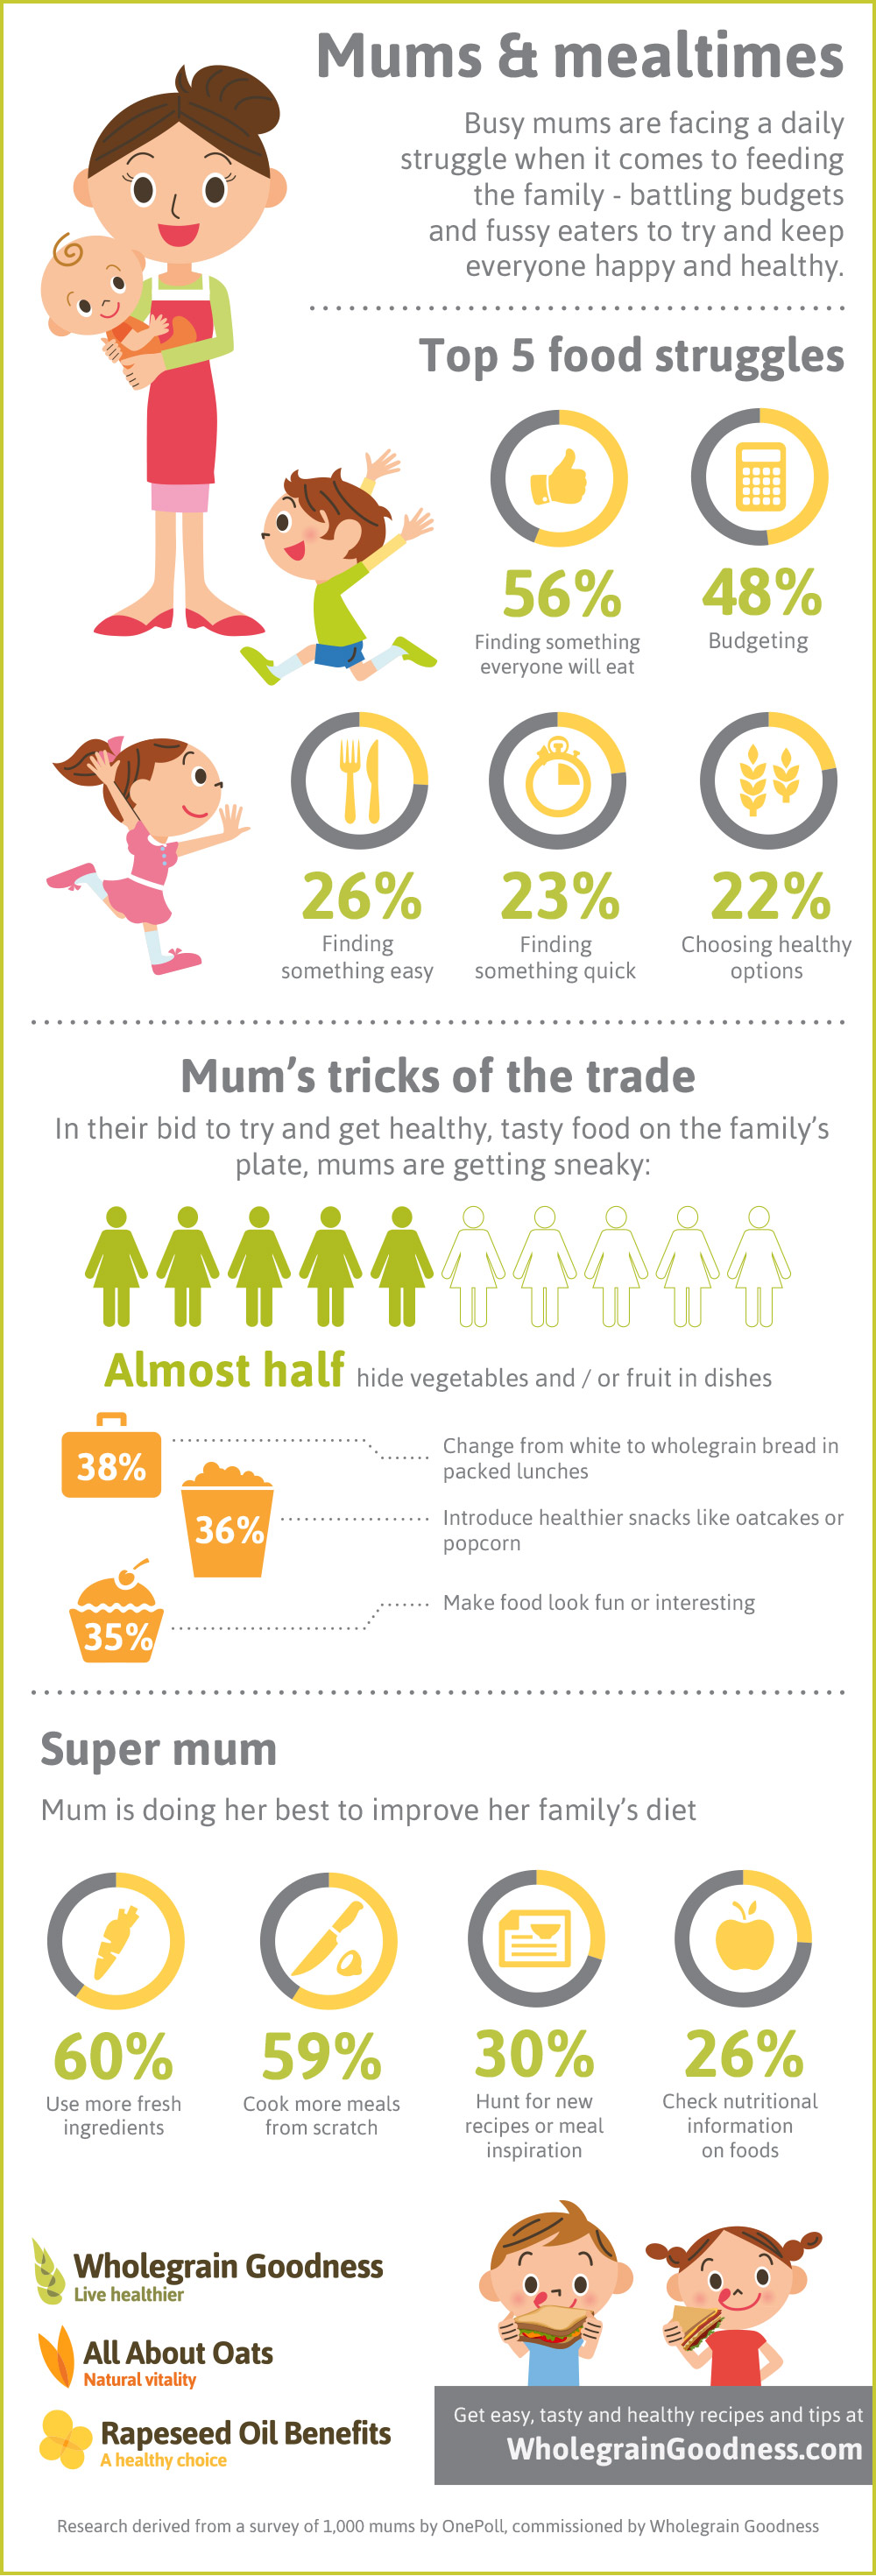 mums and mealtimes infographic